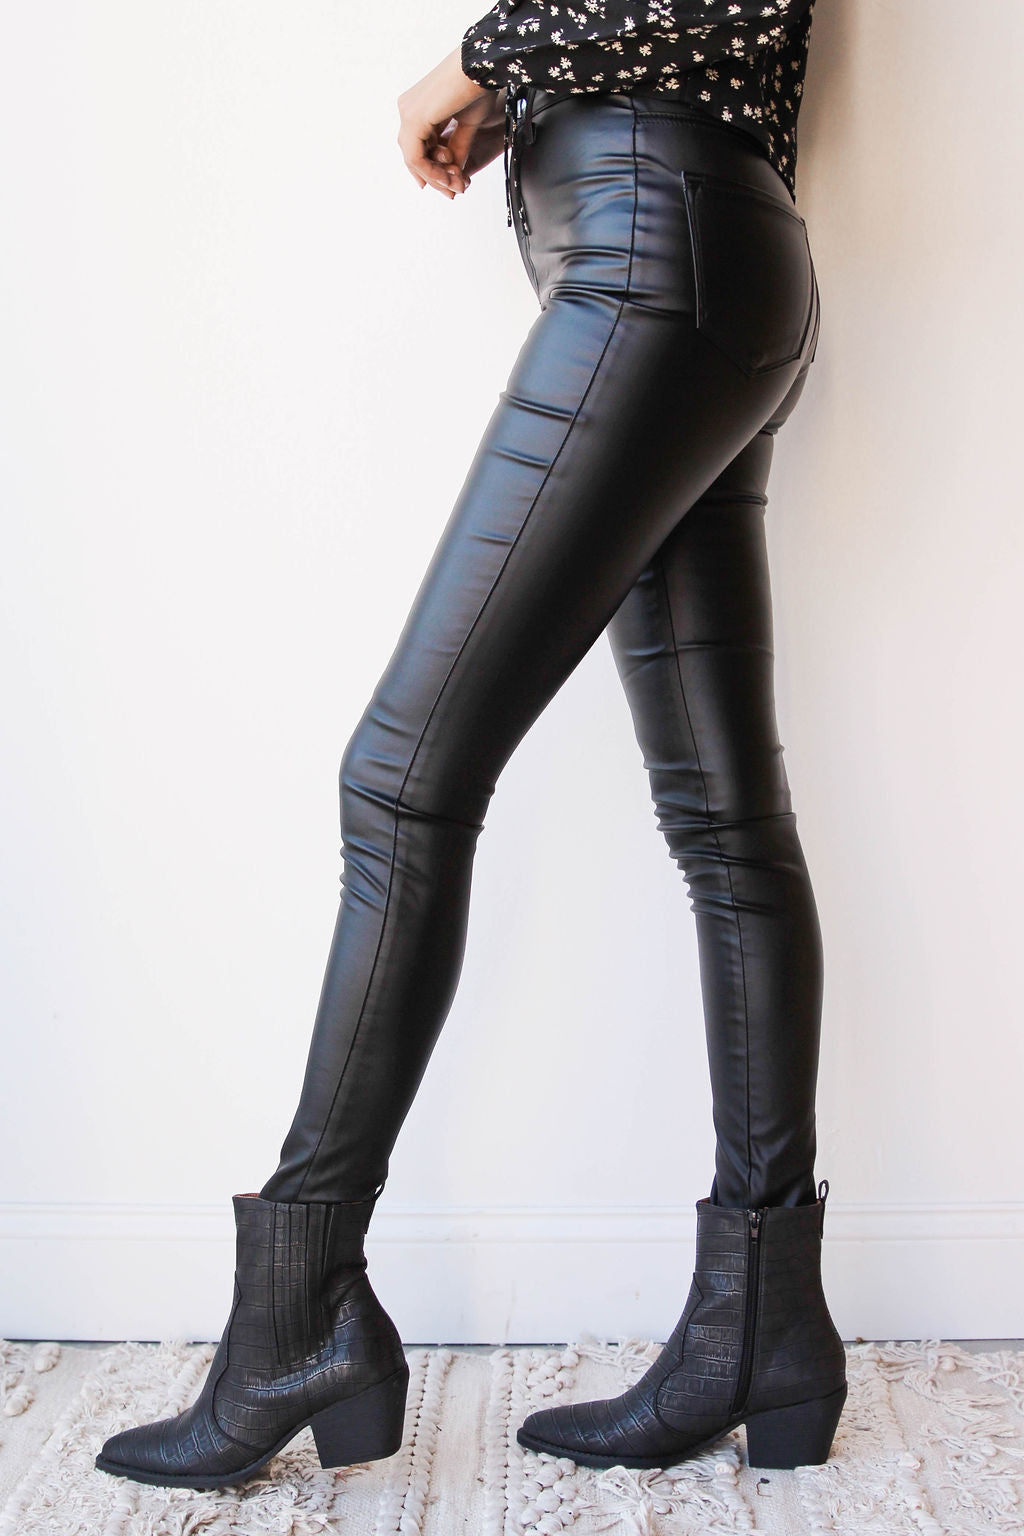 [shop name], Jacie faux leather pants